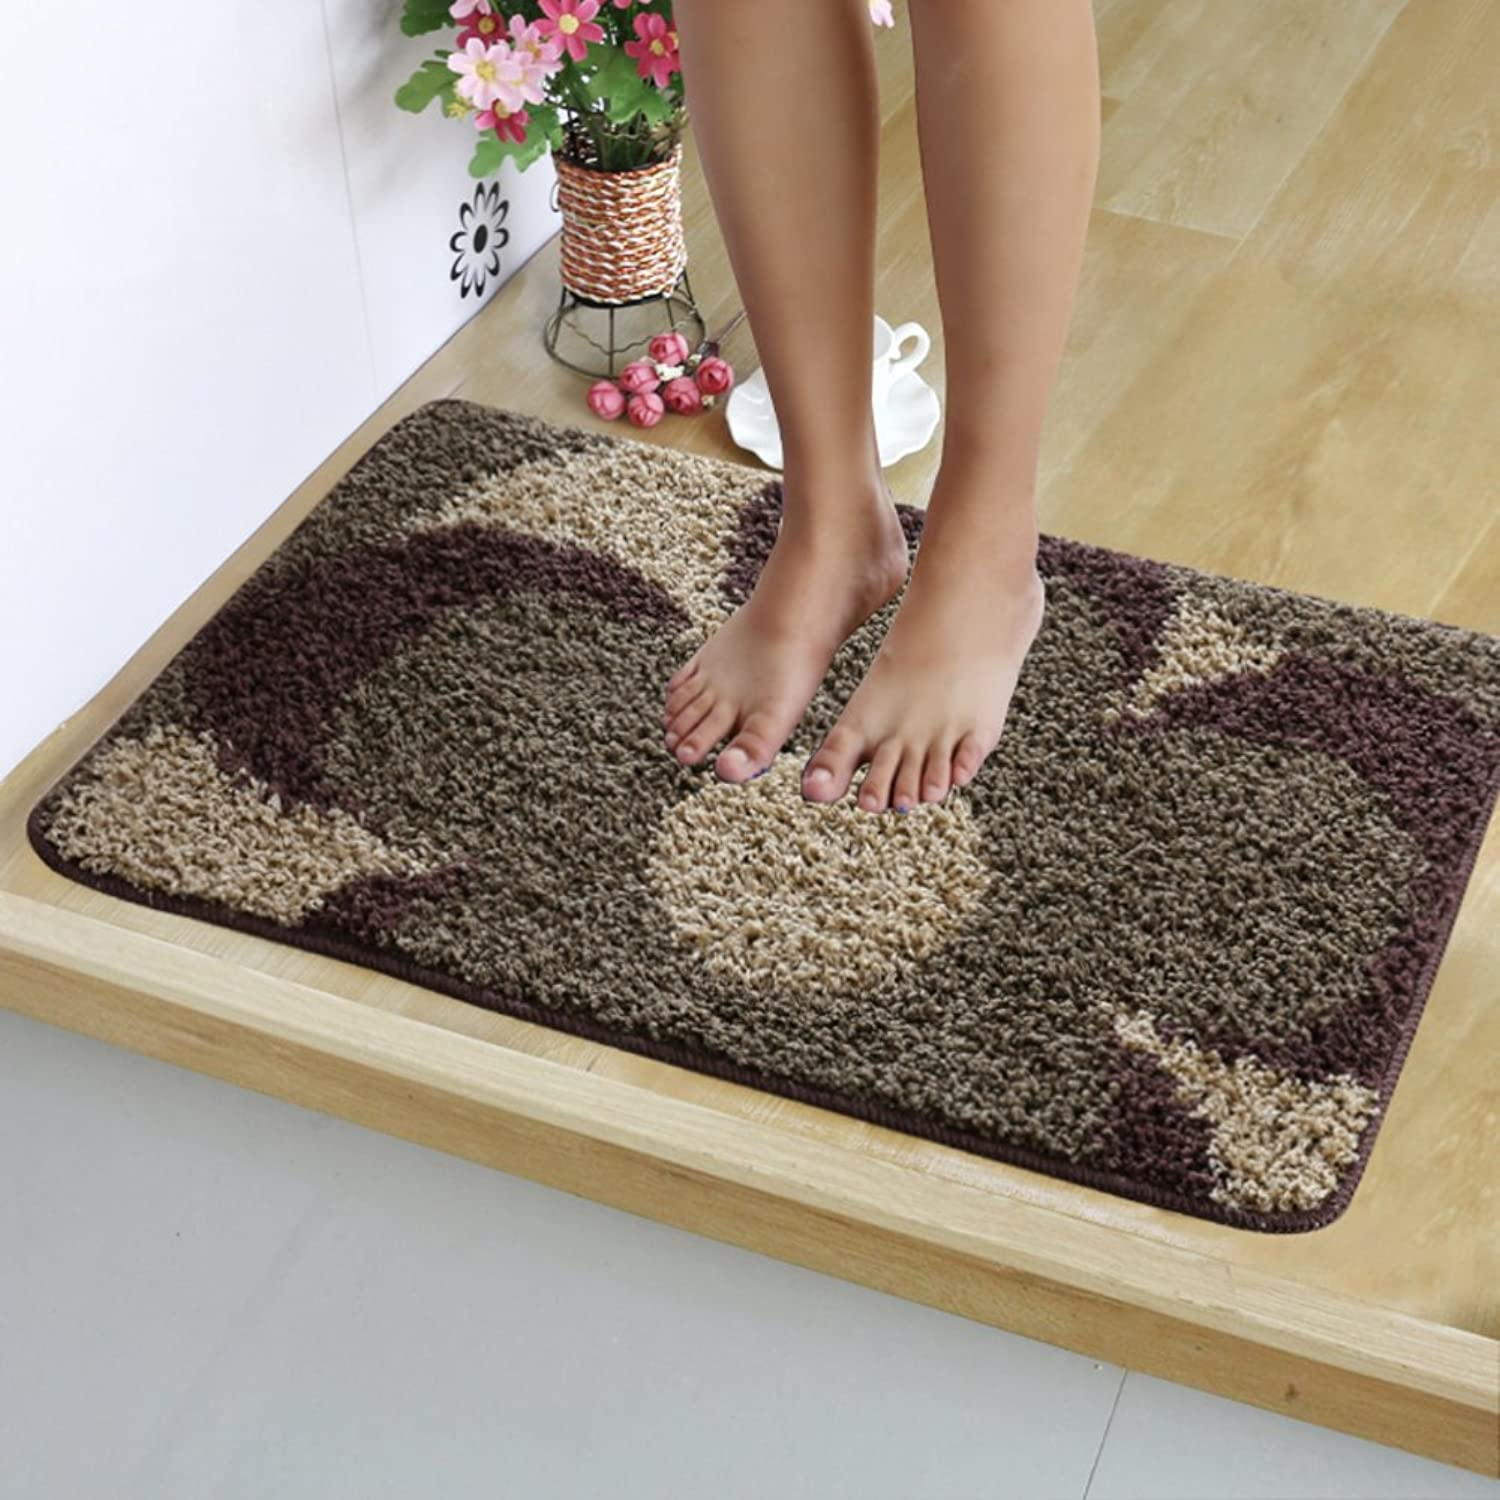 Bathroom Floor Mat, Cozy Non-Slip Thick Mat, Kitchen Floor Doorway Balcony Corridor, Strong Water Absorption-F 80x120cm(31x47inch)